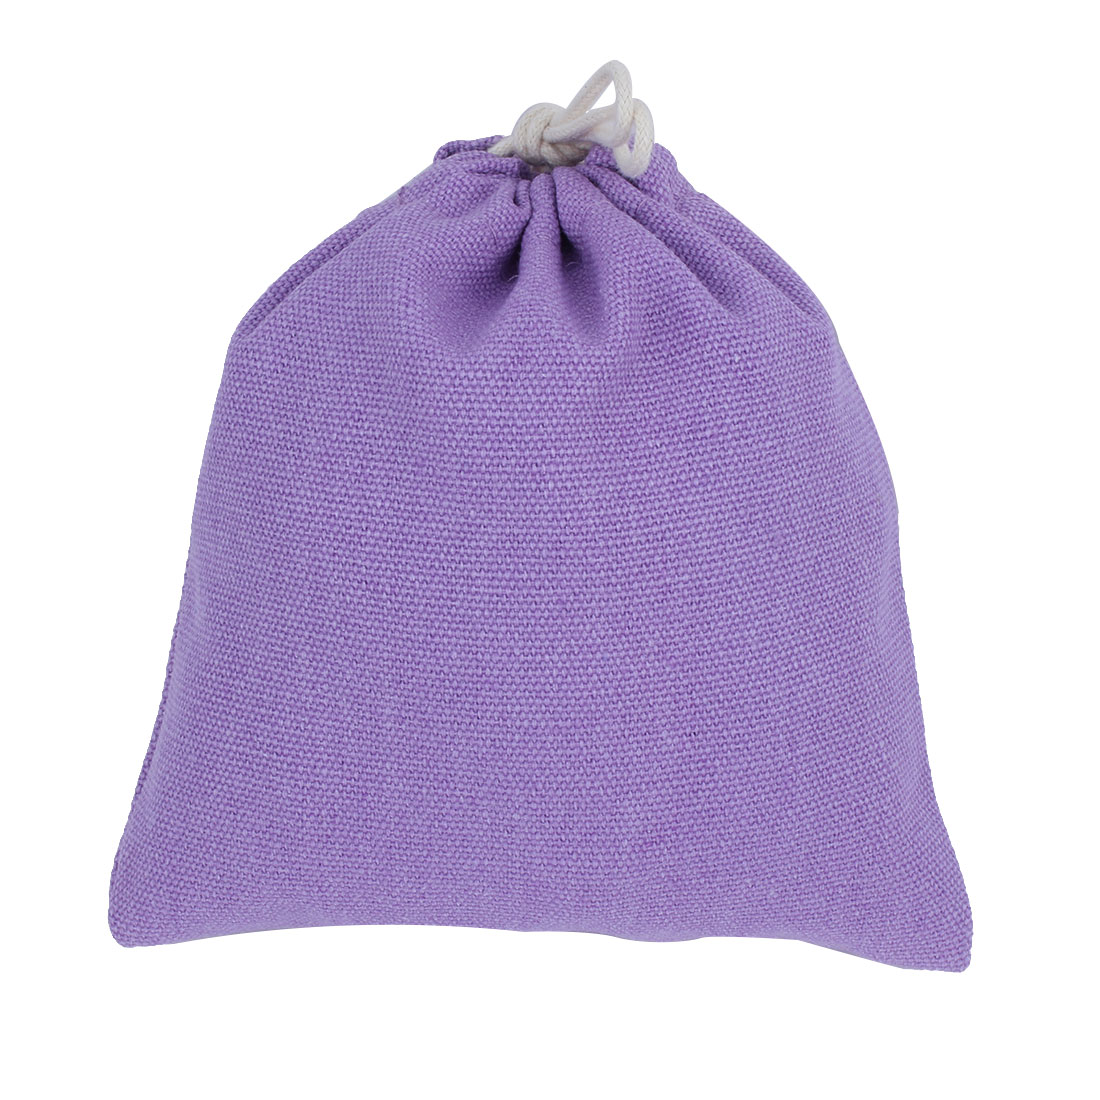 Household Travel Canvas Drawstring String Pouch Storage Packing Toe Bag Purple